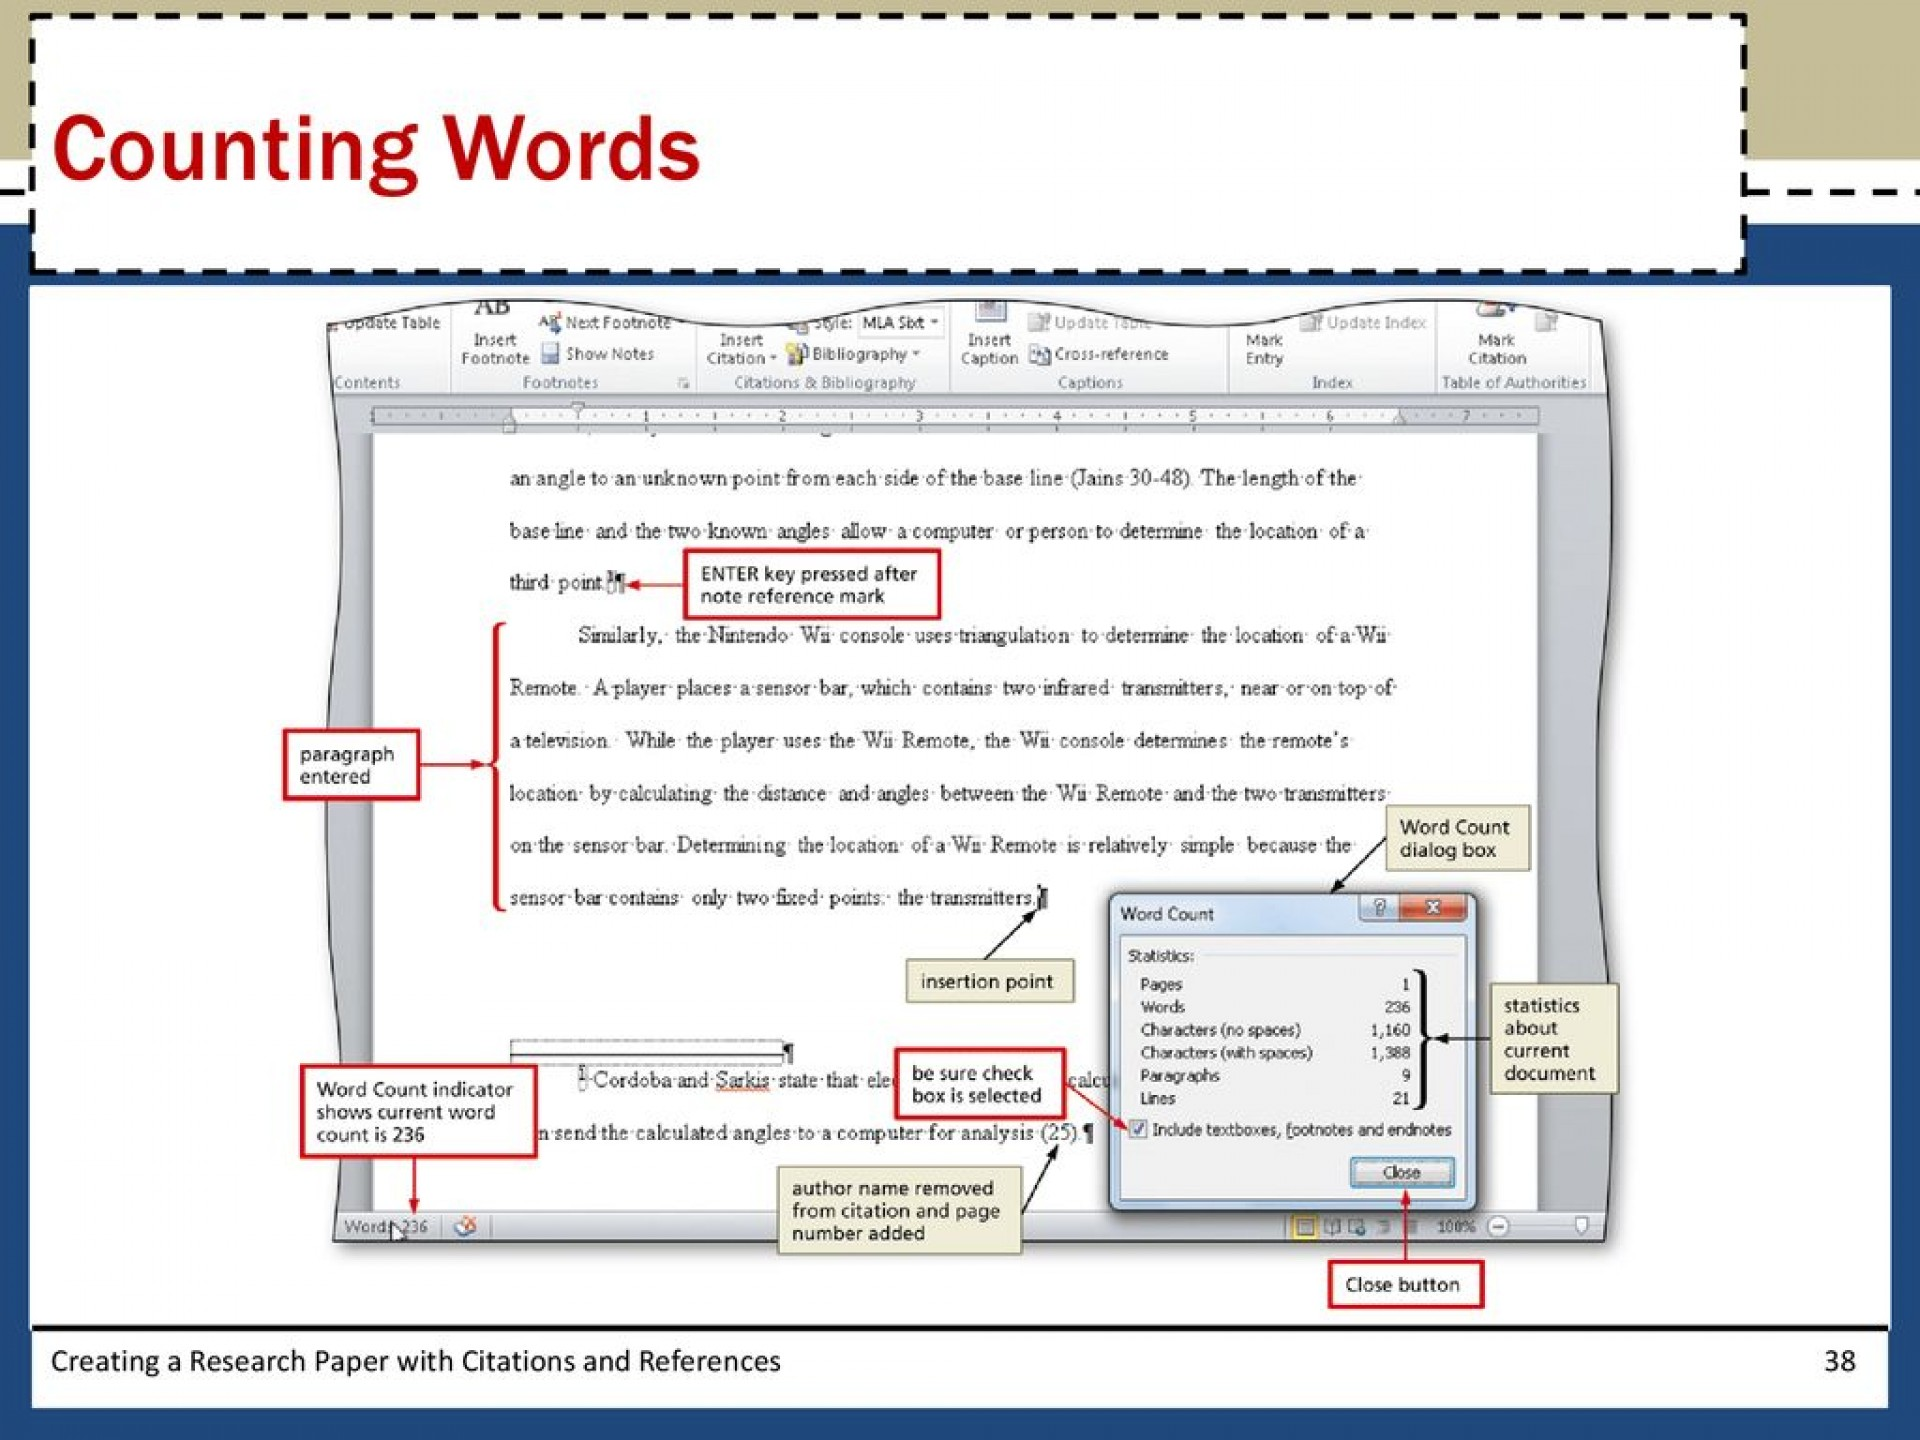 003 Research Paper Countingwordscreatingaresearchpaperwithcitationsandreferences Creating With Citations And Unusual A References Sources Quizlet Word Module 2 1920